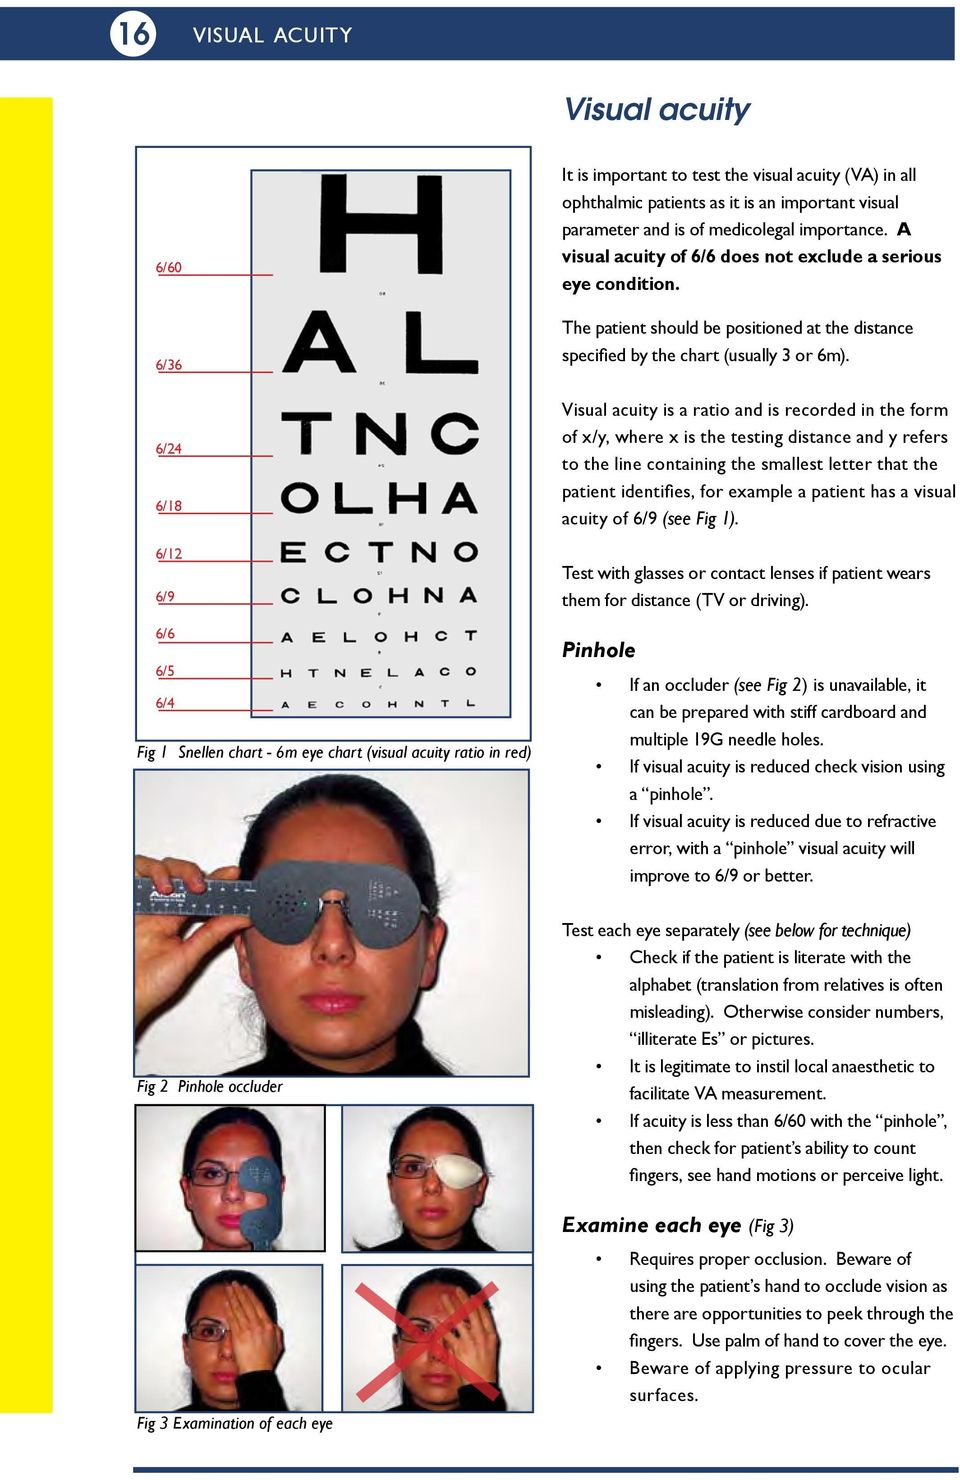 A visual acuity of 6/6 does not exclude a serious eye condition. The patient should be positioned at the distance speciied by the chart (usually 3 or 6m).